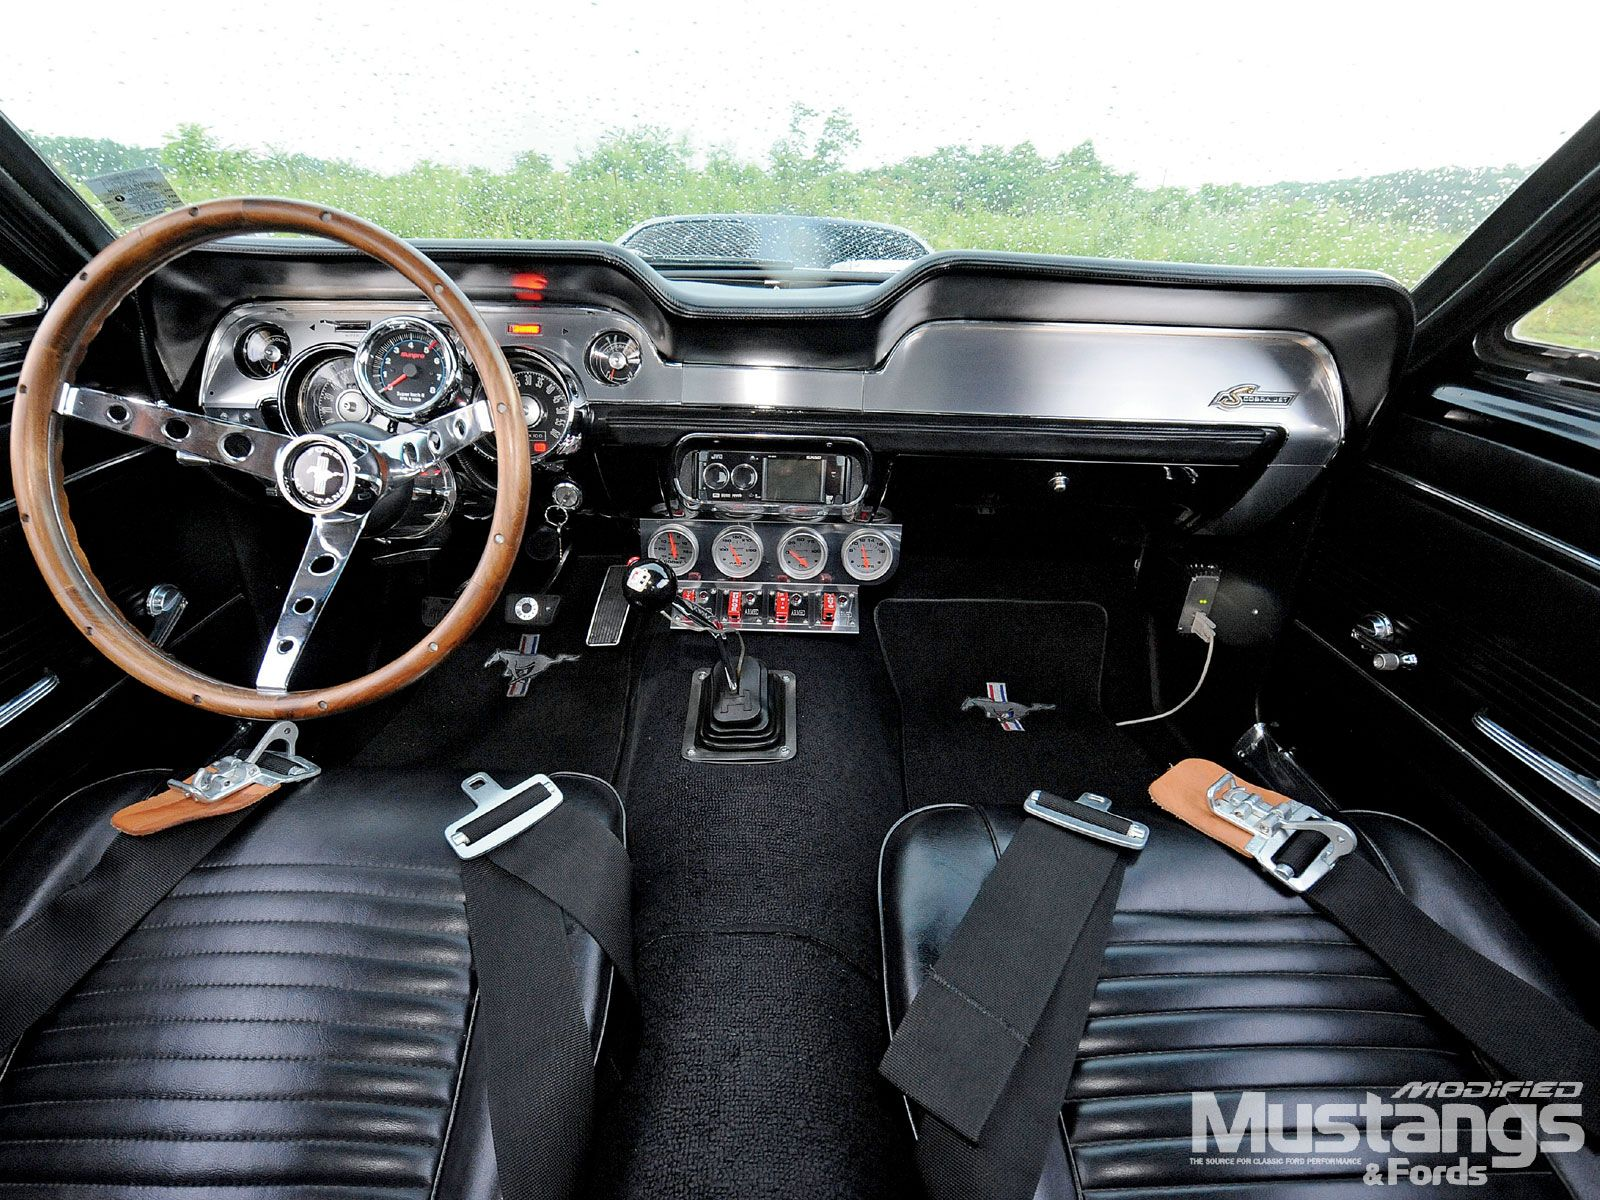 1967 ford mustang interior i cannot stand the standard front seat console and needless gadgetry not the best example with all these gauges